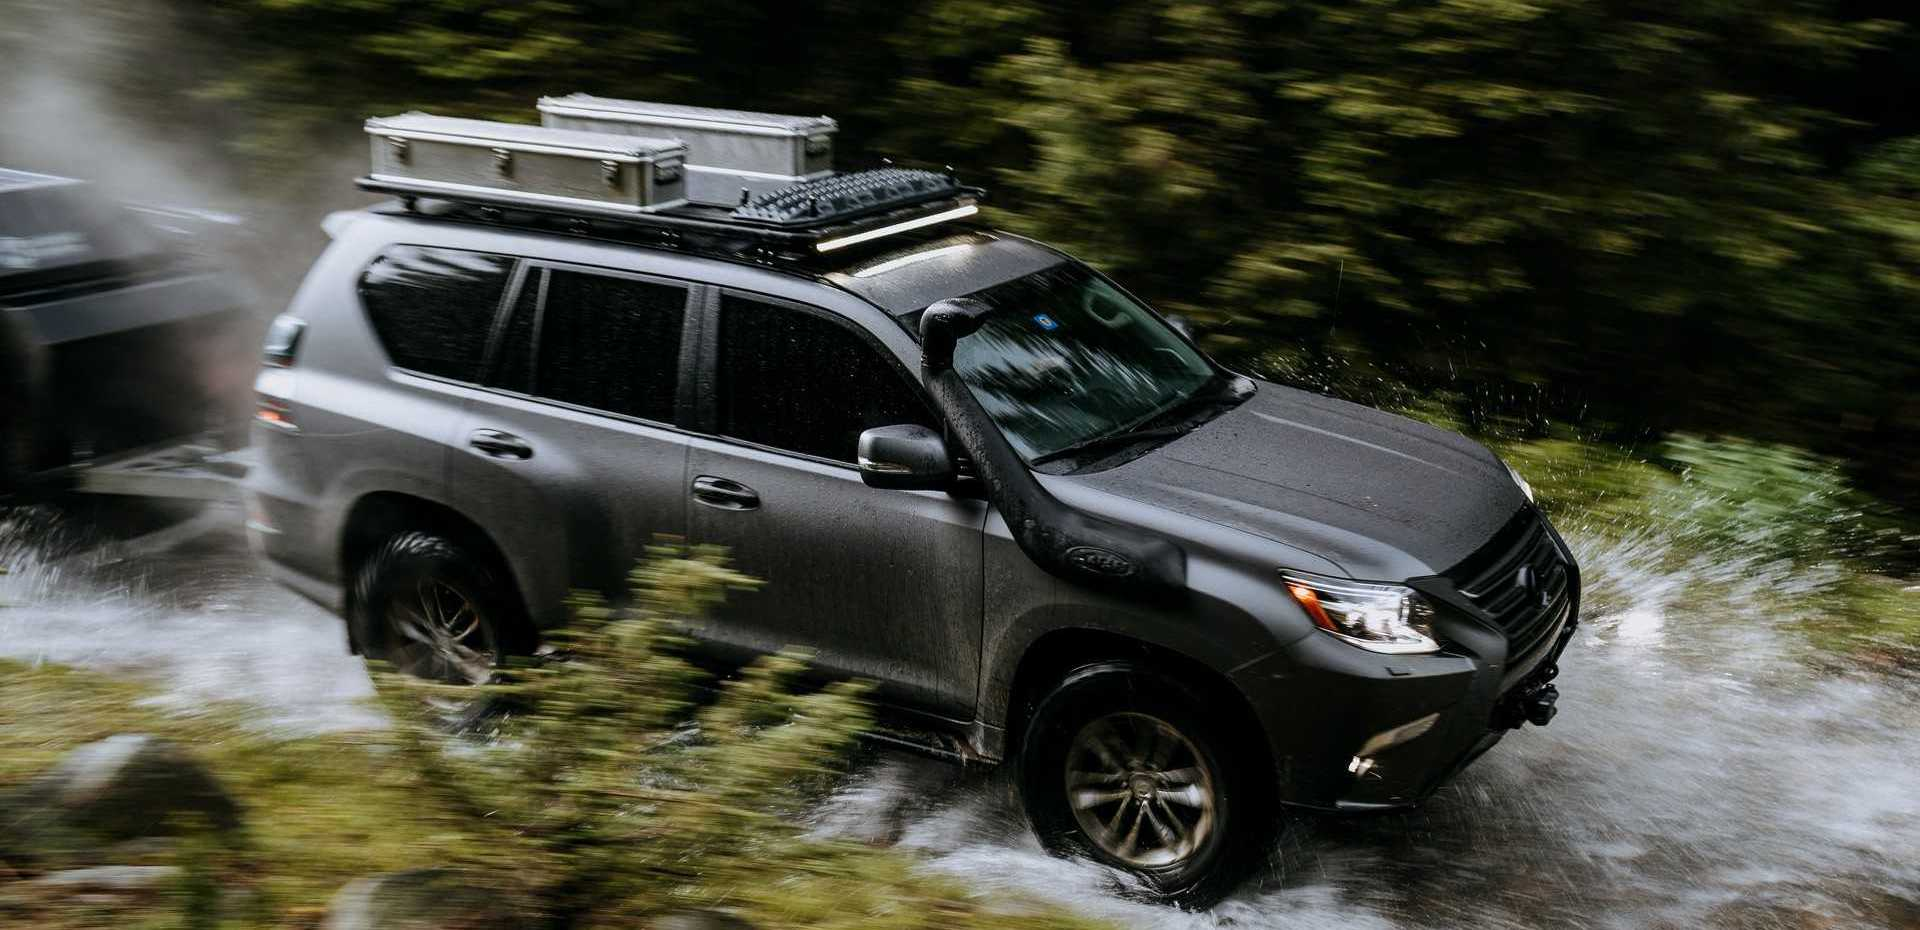 Lexus GX Off-Road Concept Is The SUV That'll Take You Anywhere